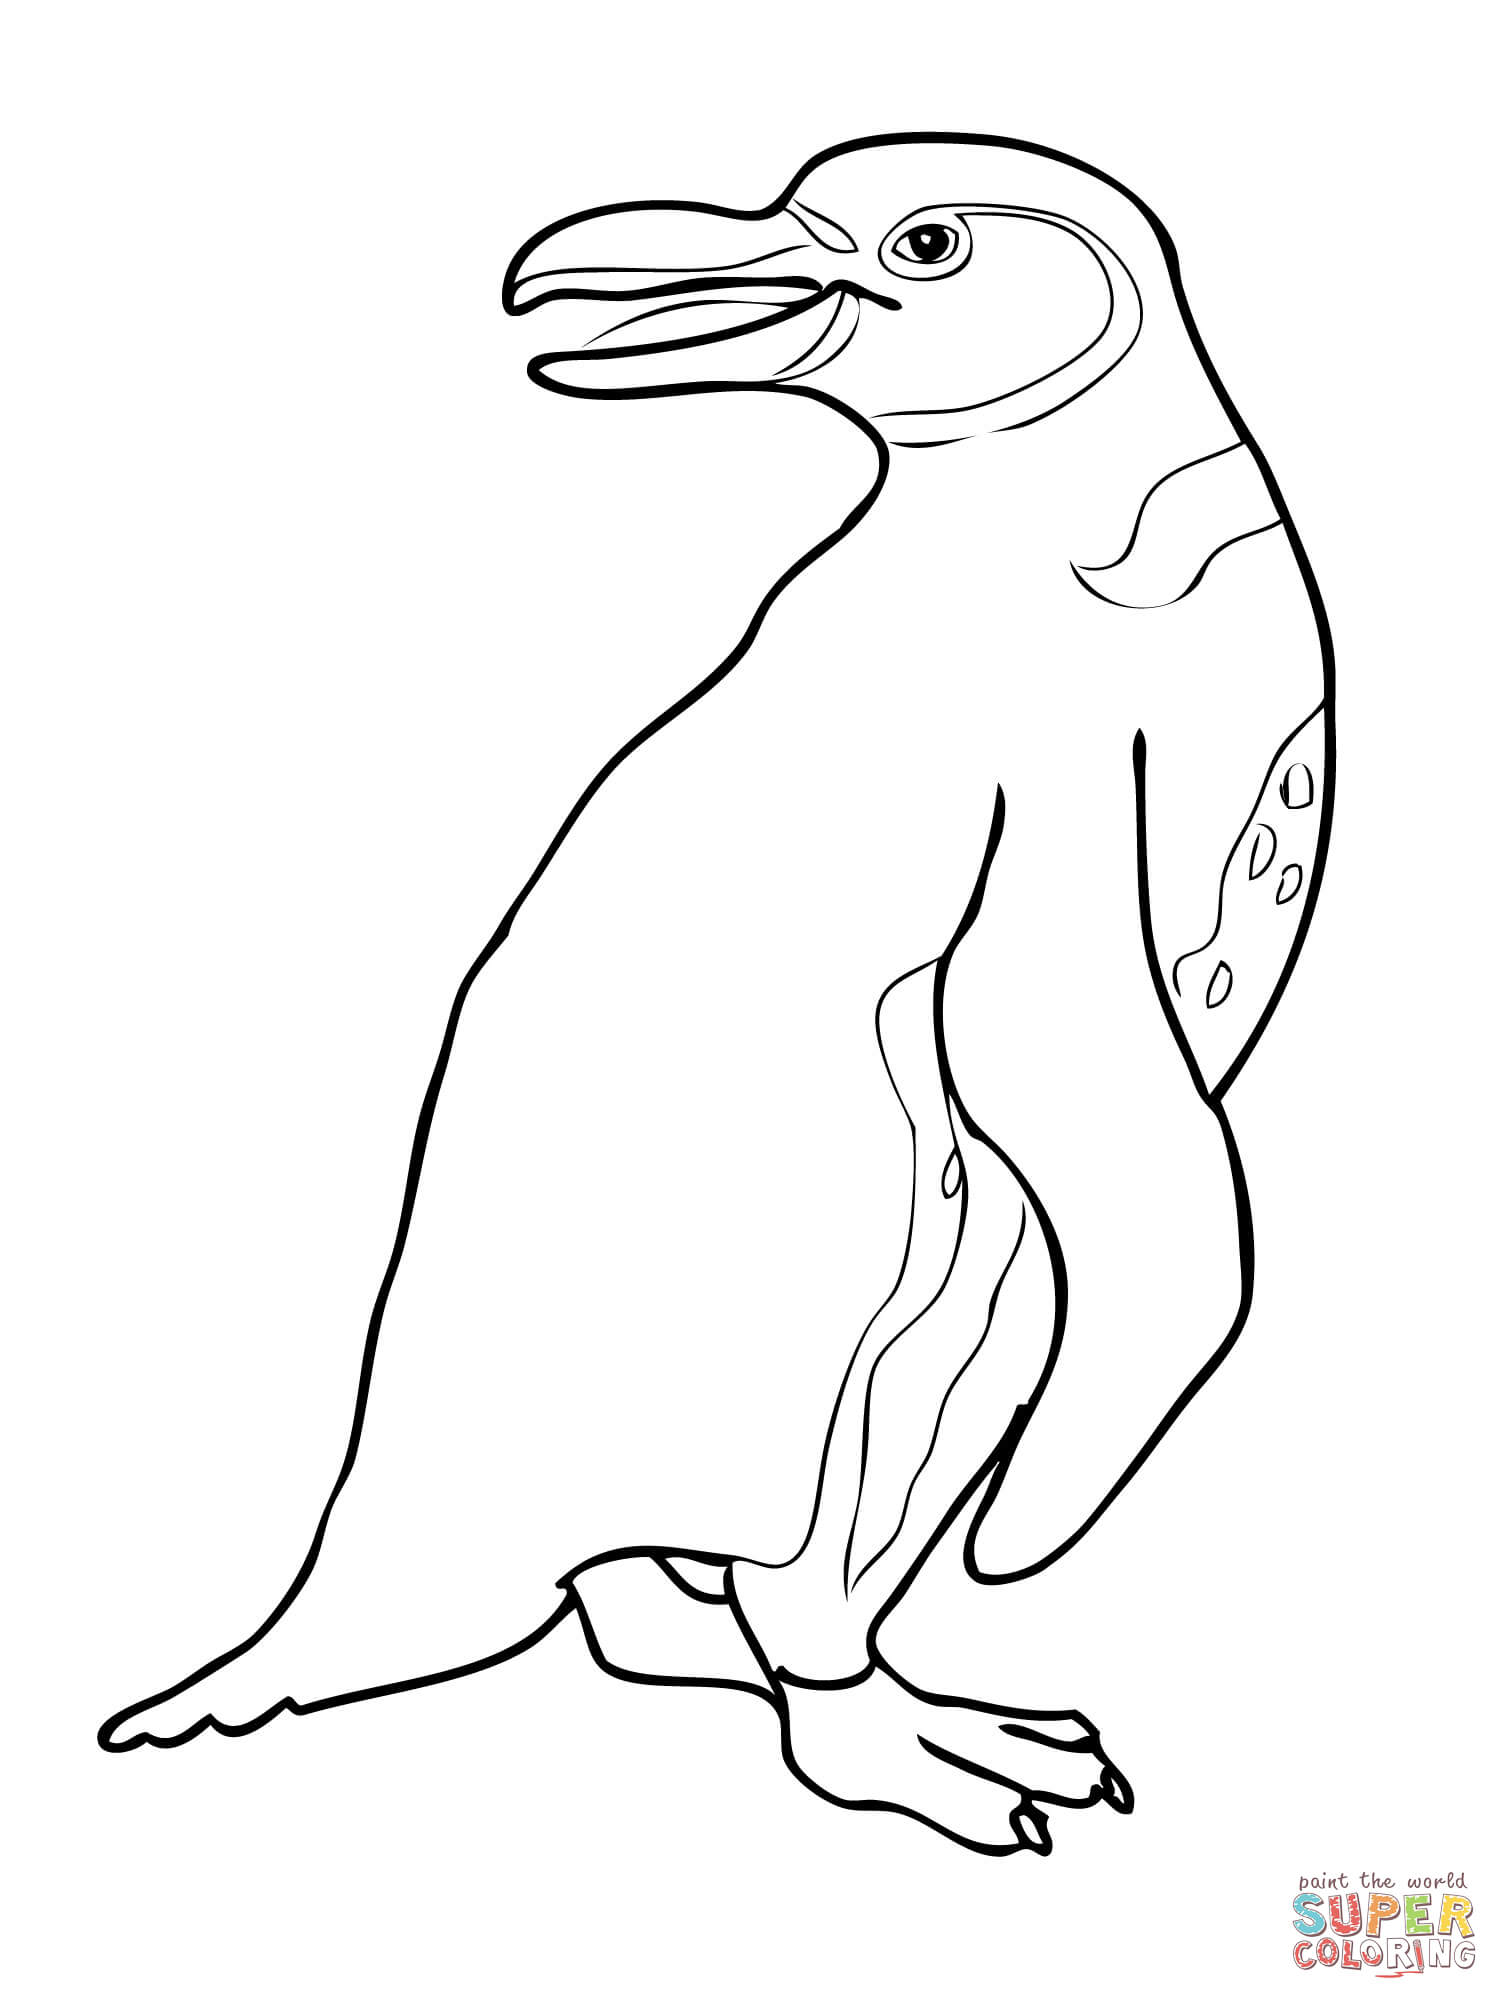 African Penguin Drawing at GetDrawings.com | Free for personal use ...